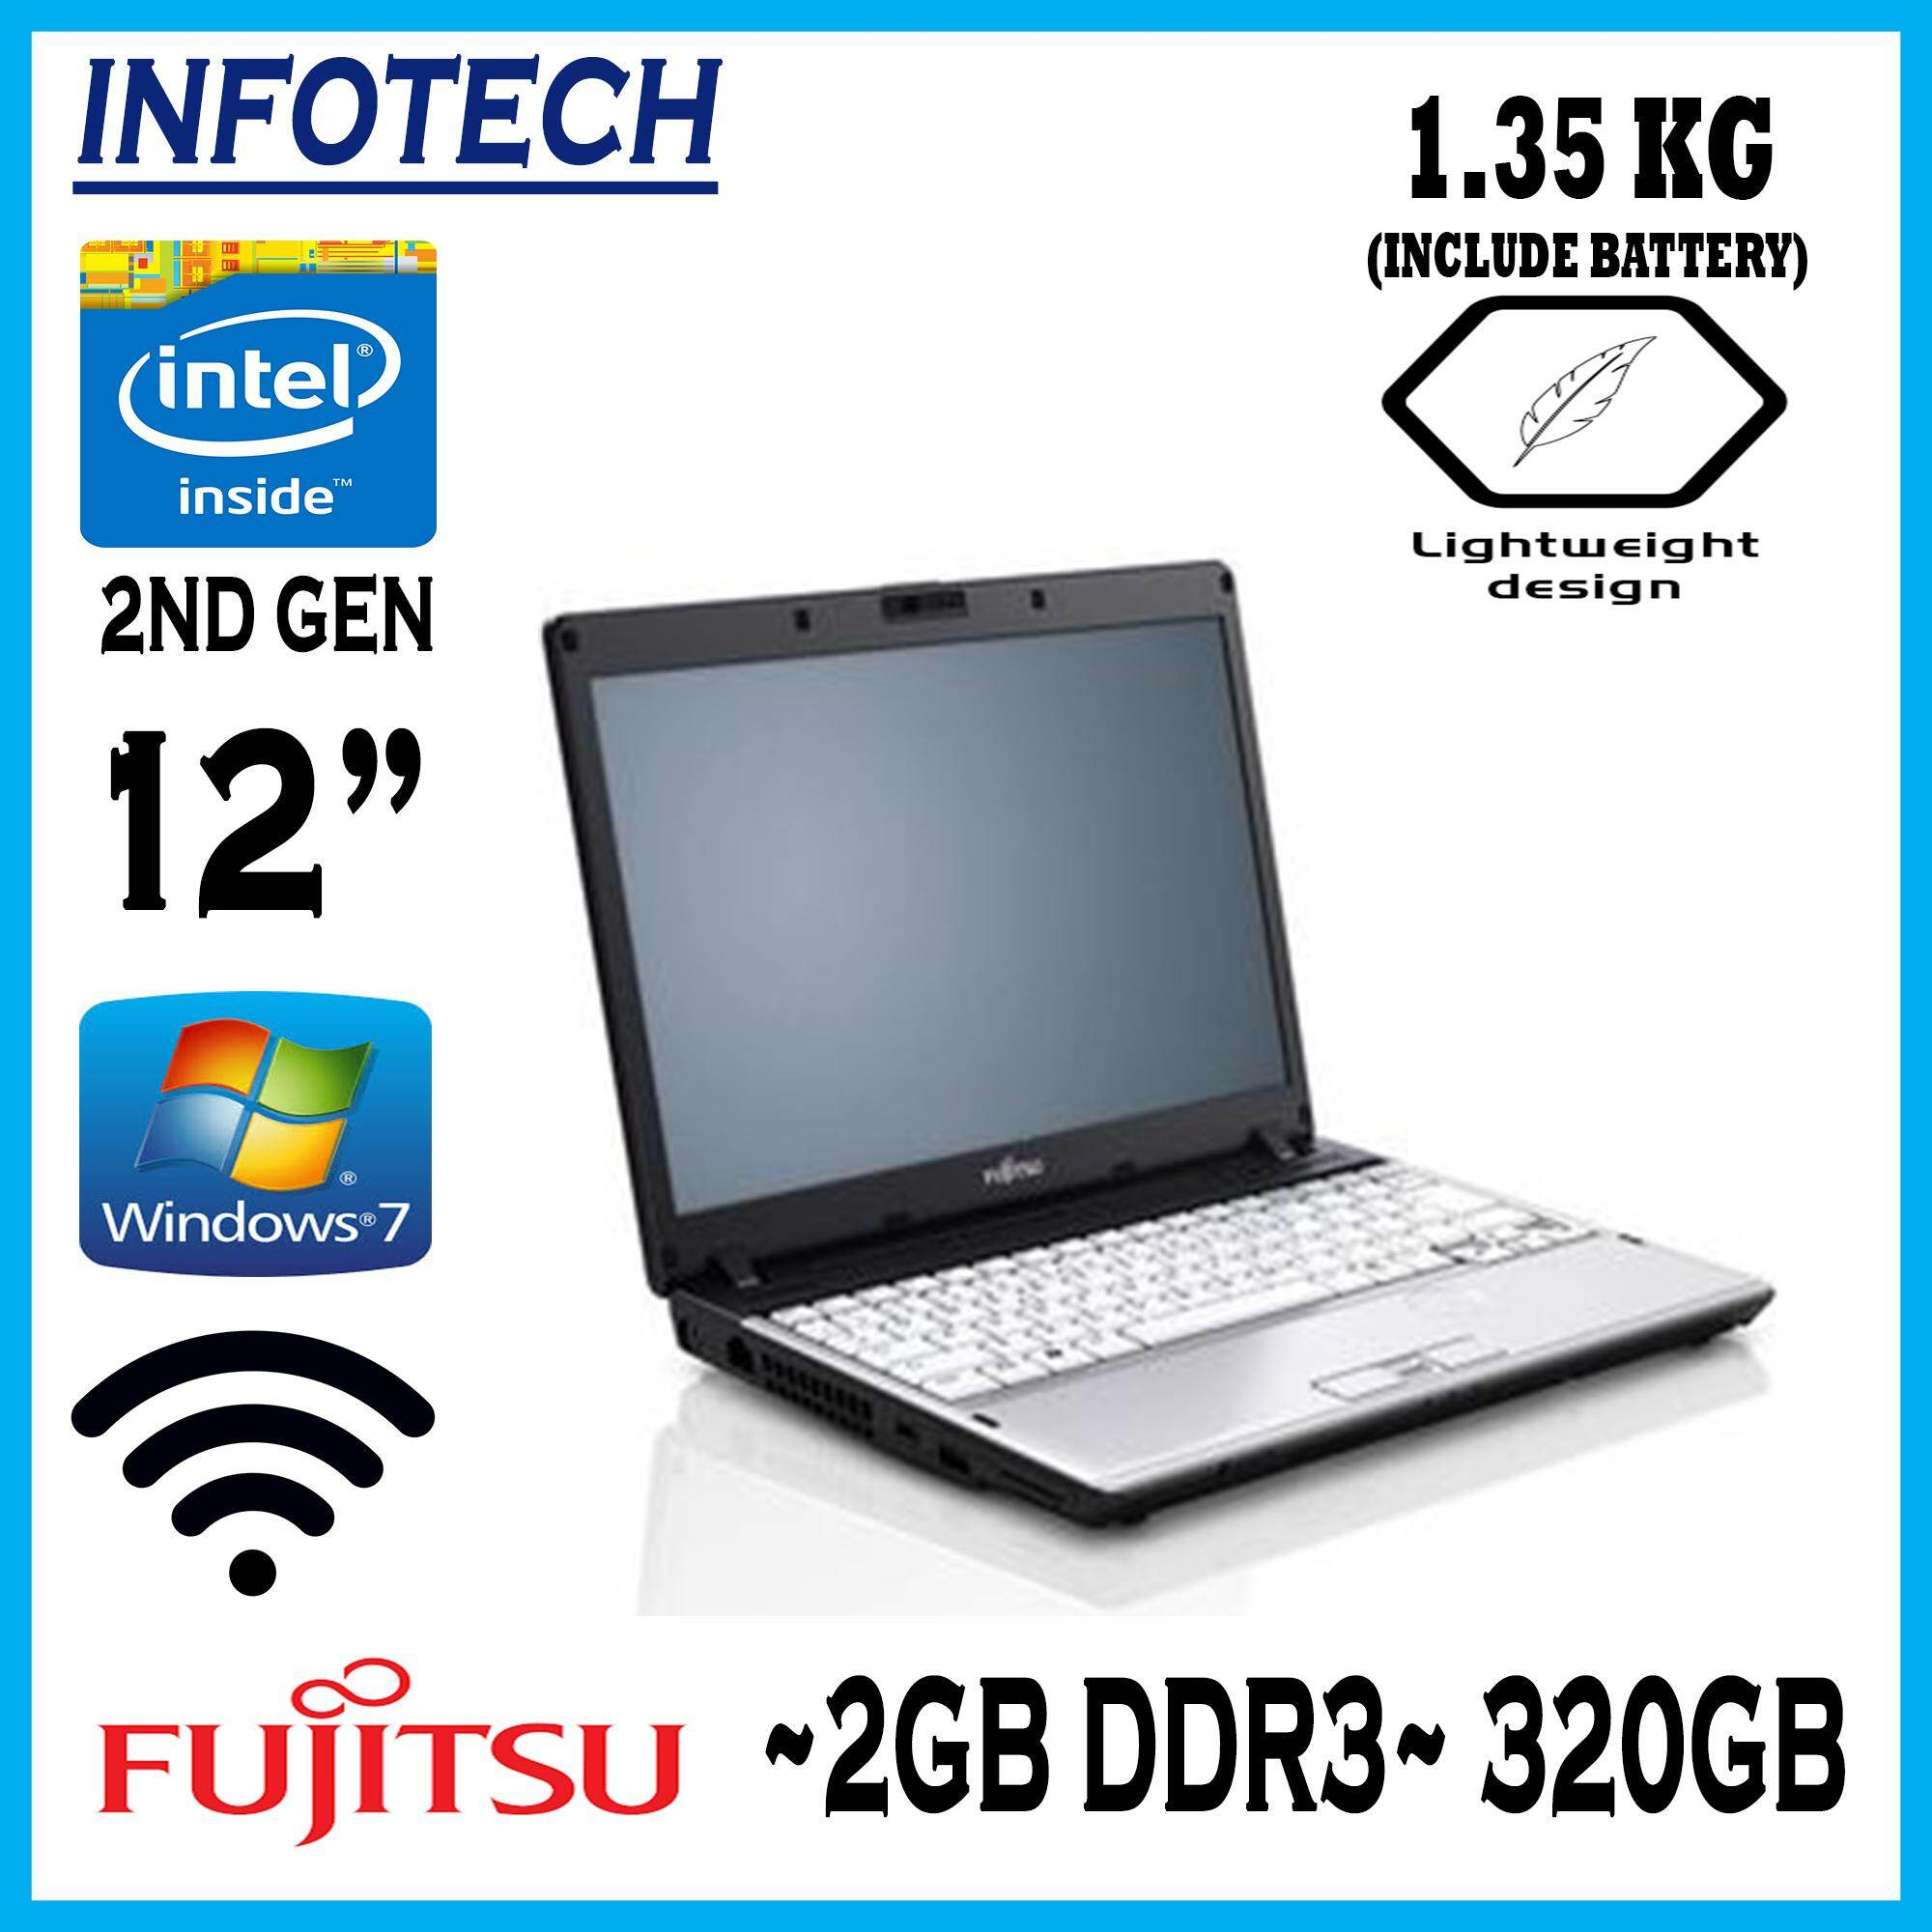 Fujitsu intel celeron 2nd gen 320GB 2GB WIFI VGA LAPTOP NOTEBOOK NETBOOK (refurbished) Malaysia